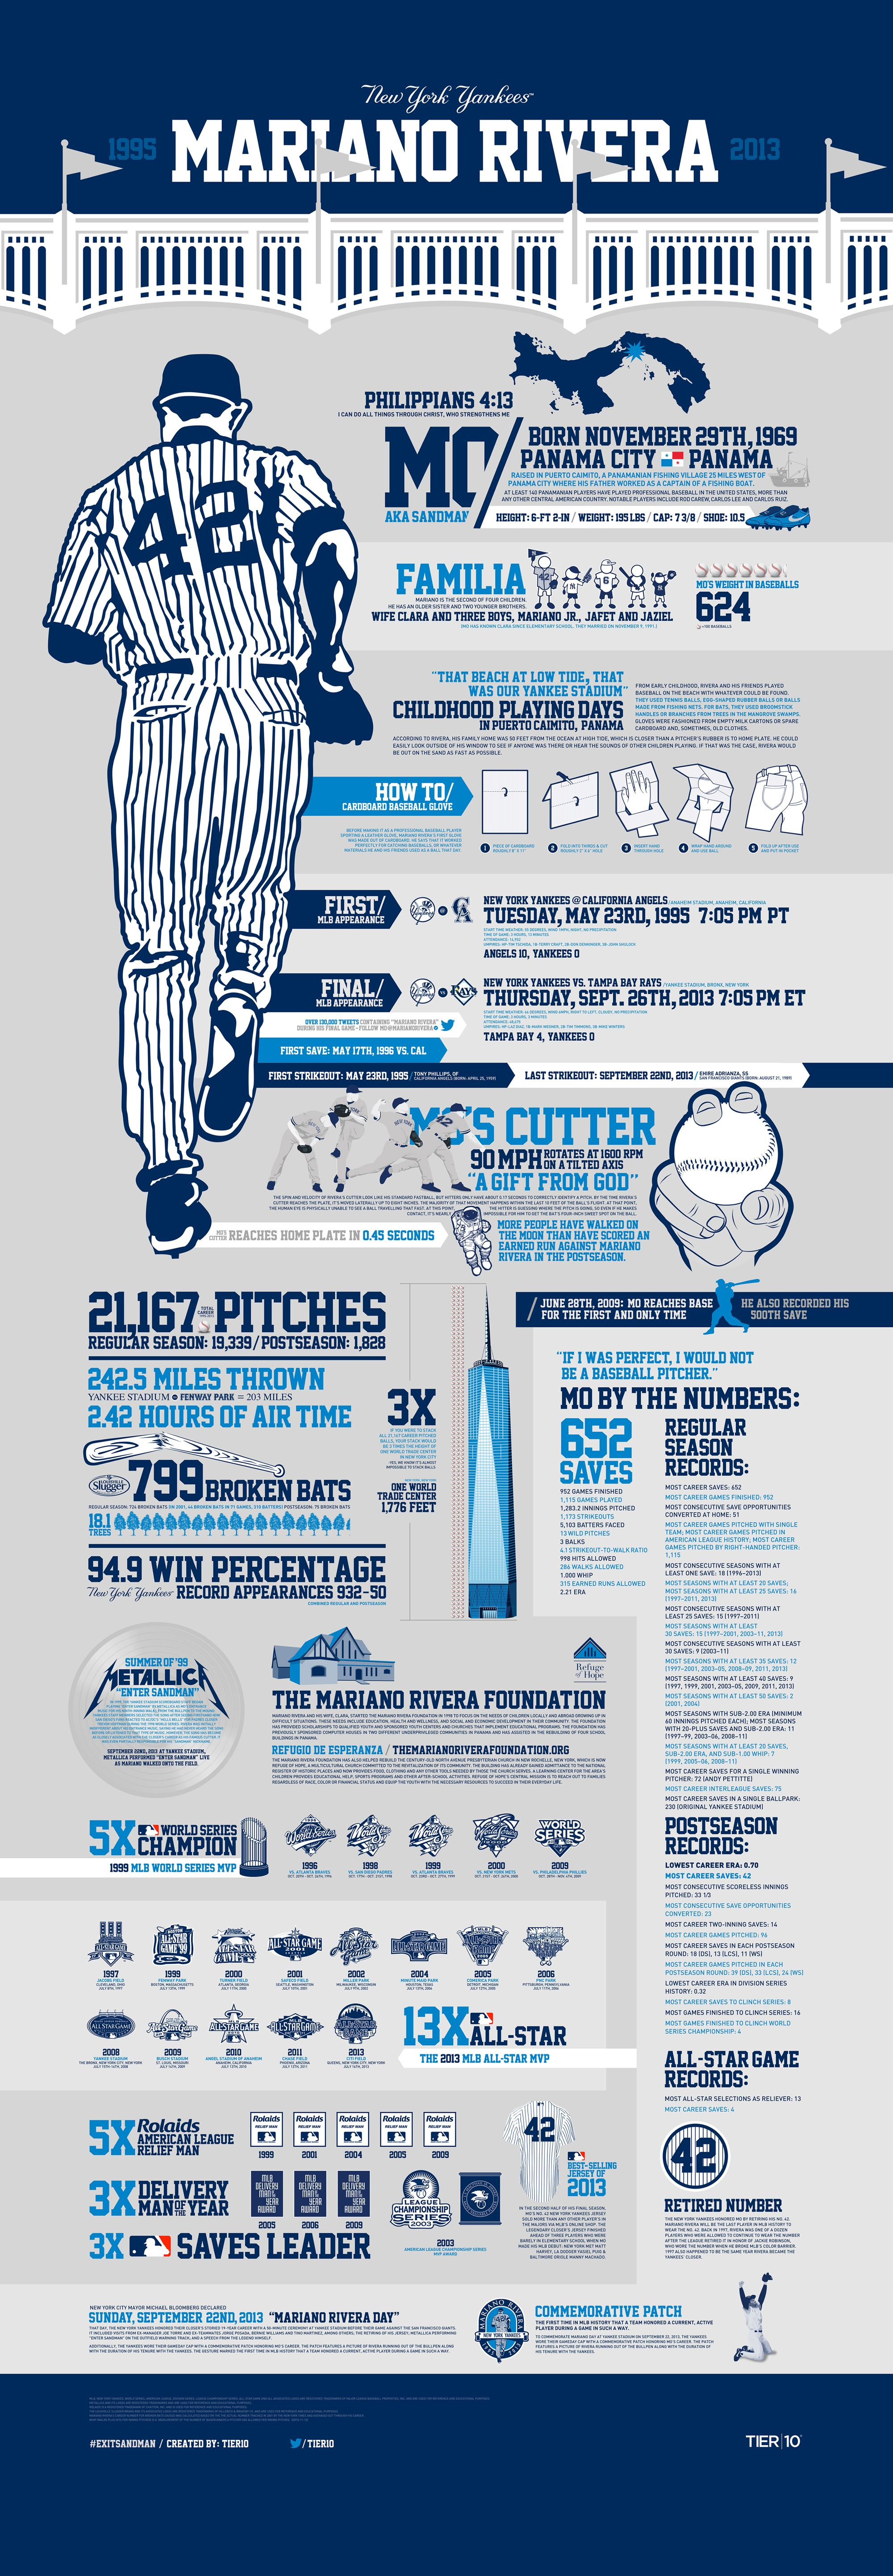 This Infographic Honors Future Hall Of Fame Pitcher Mariano Rivera Its Tells The Story Of Rivera S Life From His H New York Yankees Yankees Yankees Baseball